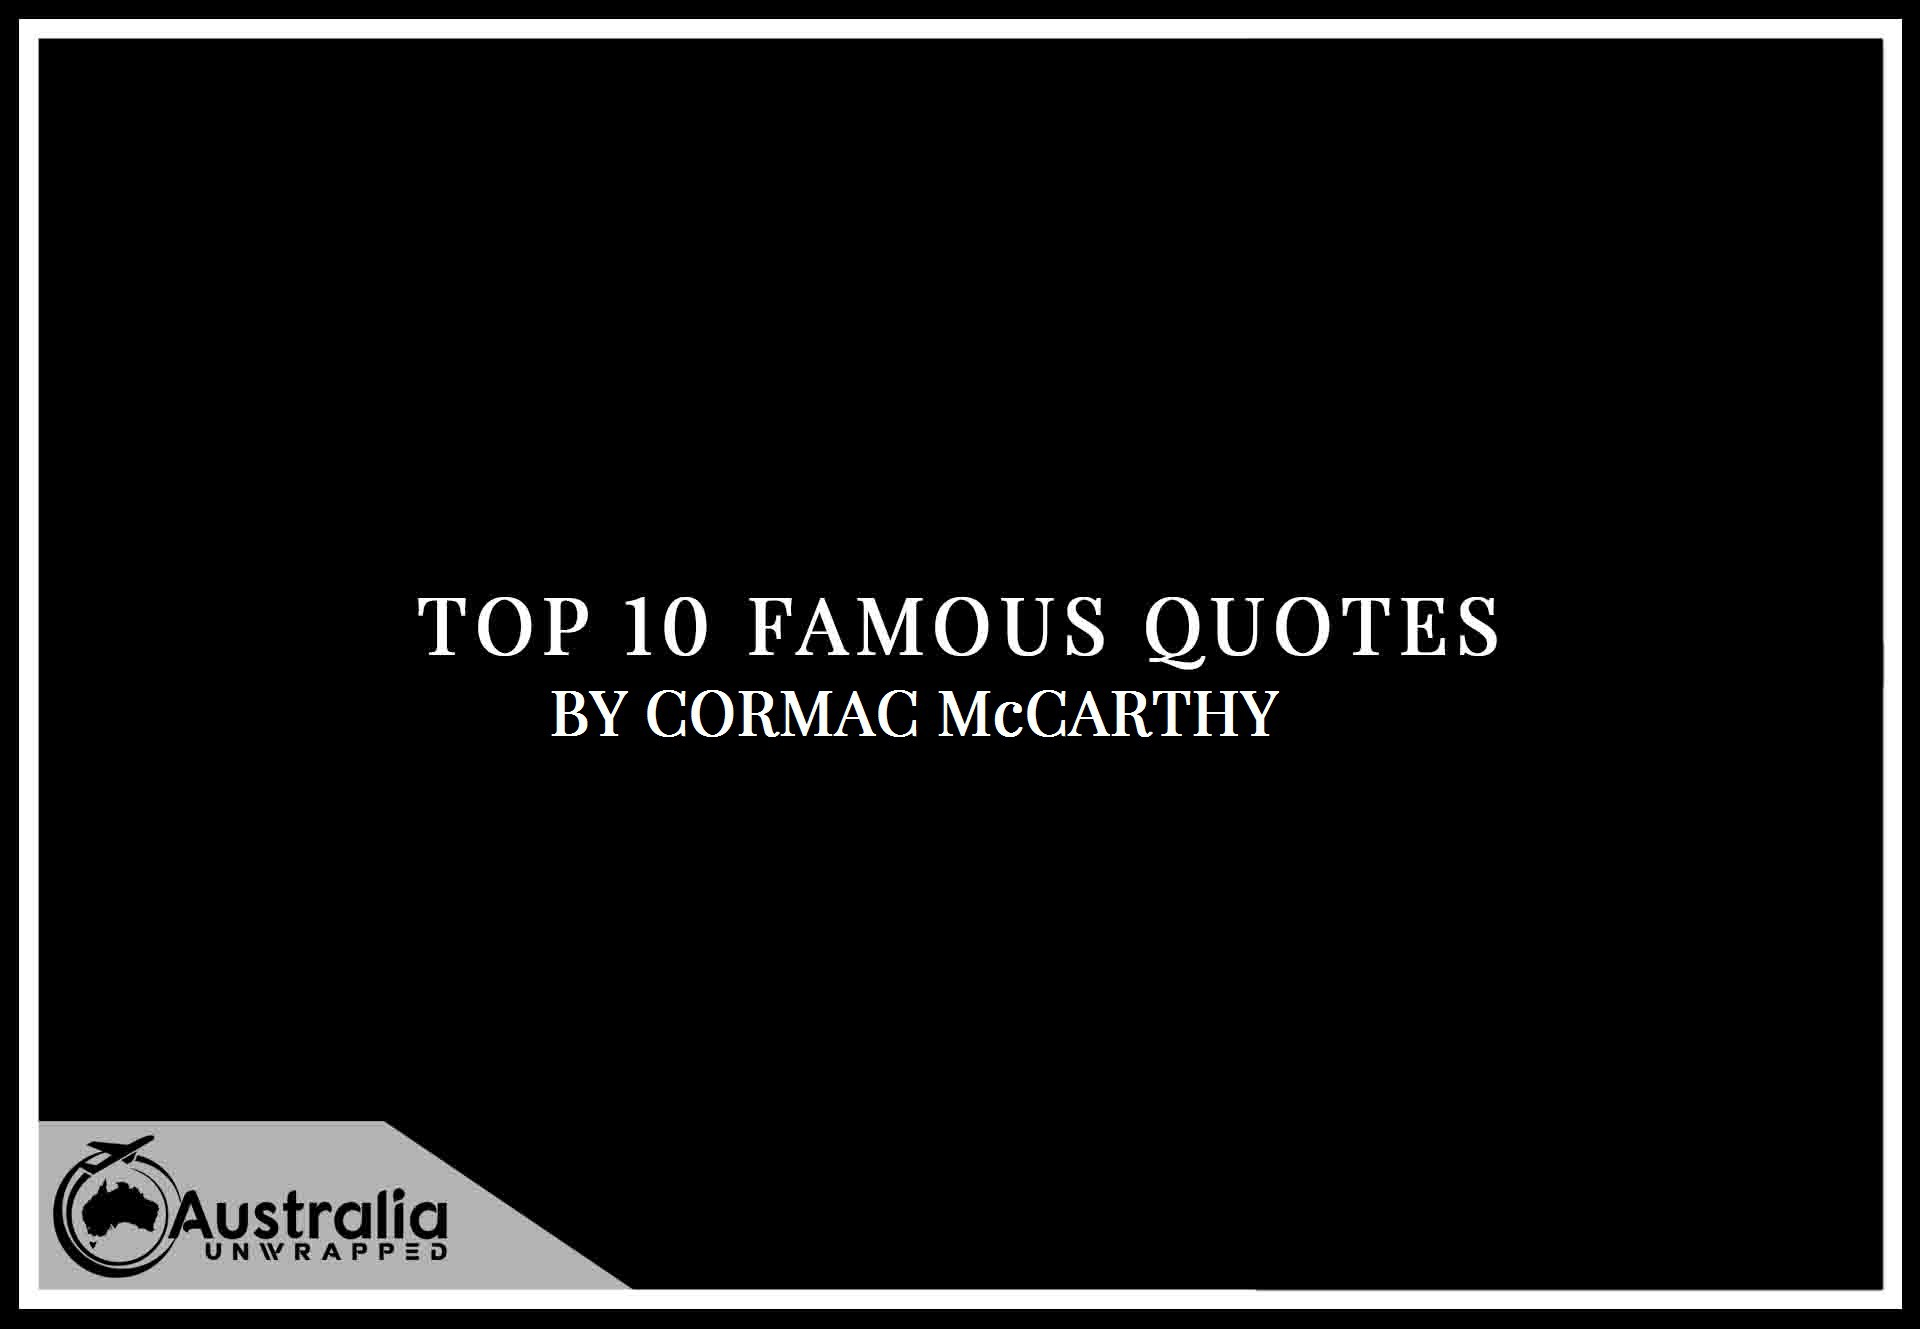 Cormac McCarthy's Top 10 Popular and Famous Quotes